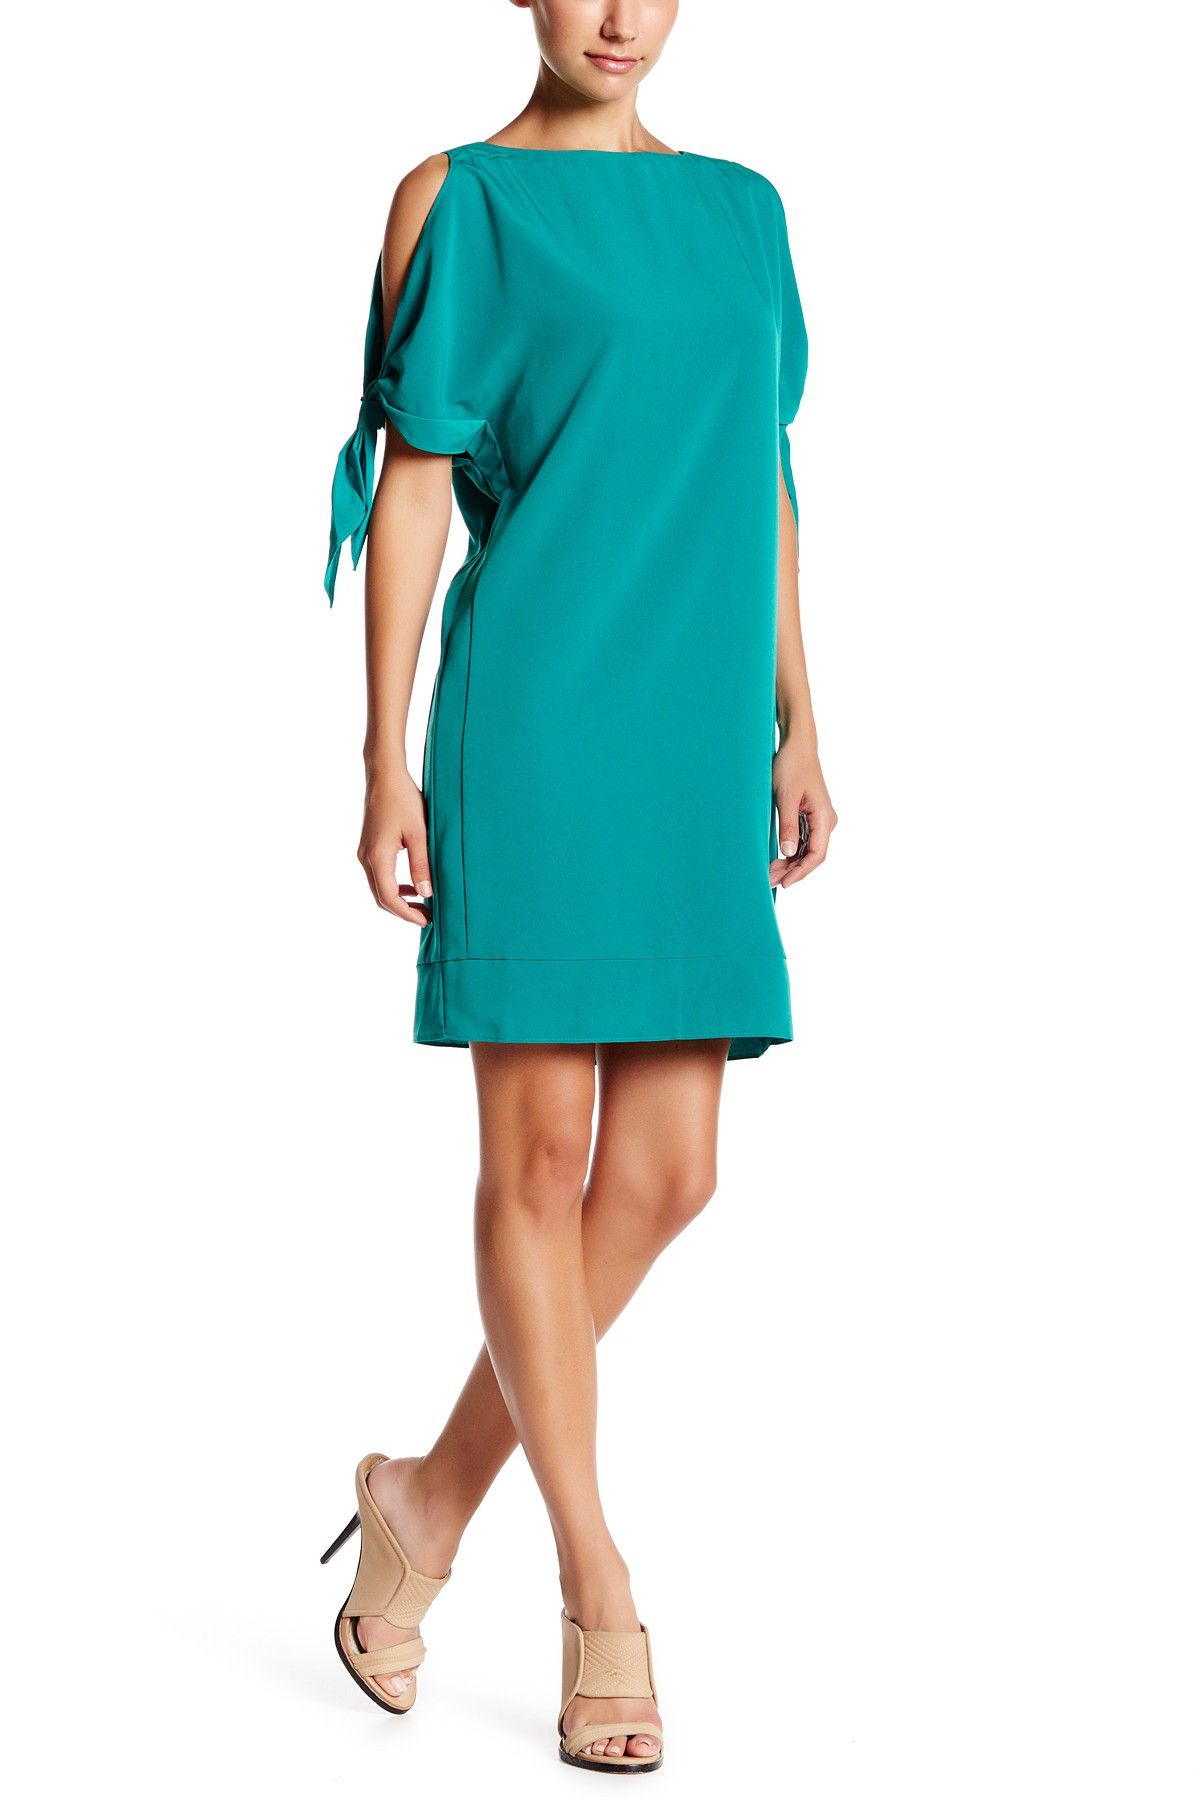 Tie Sleeve Shift Dress   Nordstrom, Wedding guest dresses and Fashion